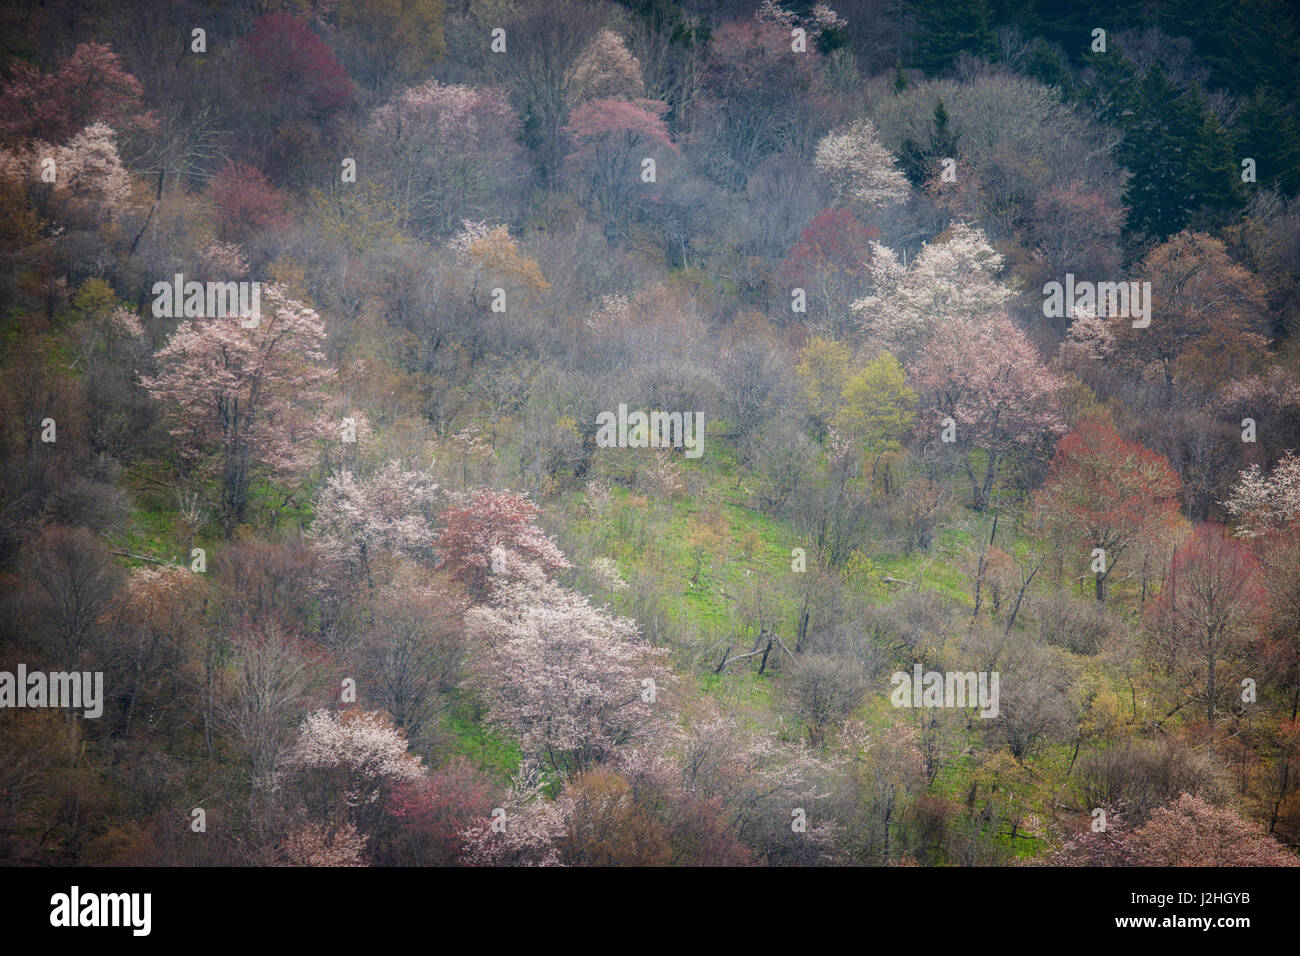 USA, North Carolina. Hardwood trees blooming in spring. Credit as: Don Grall / Jaynes Gallery / DanitaDelimont.com - Stock Image